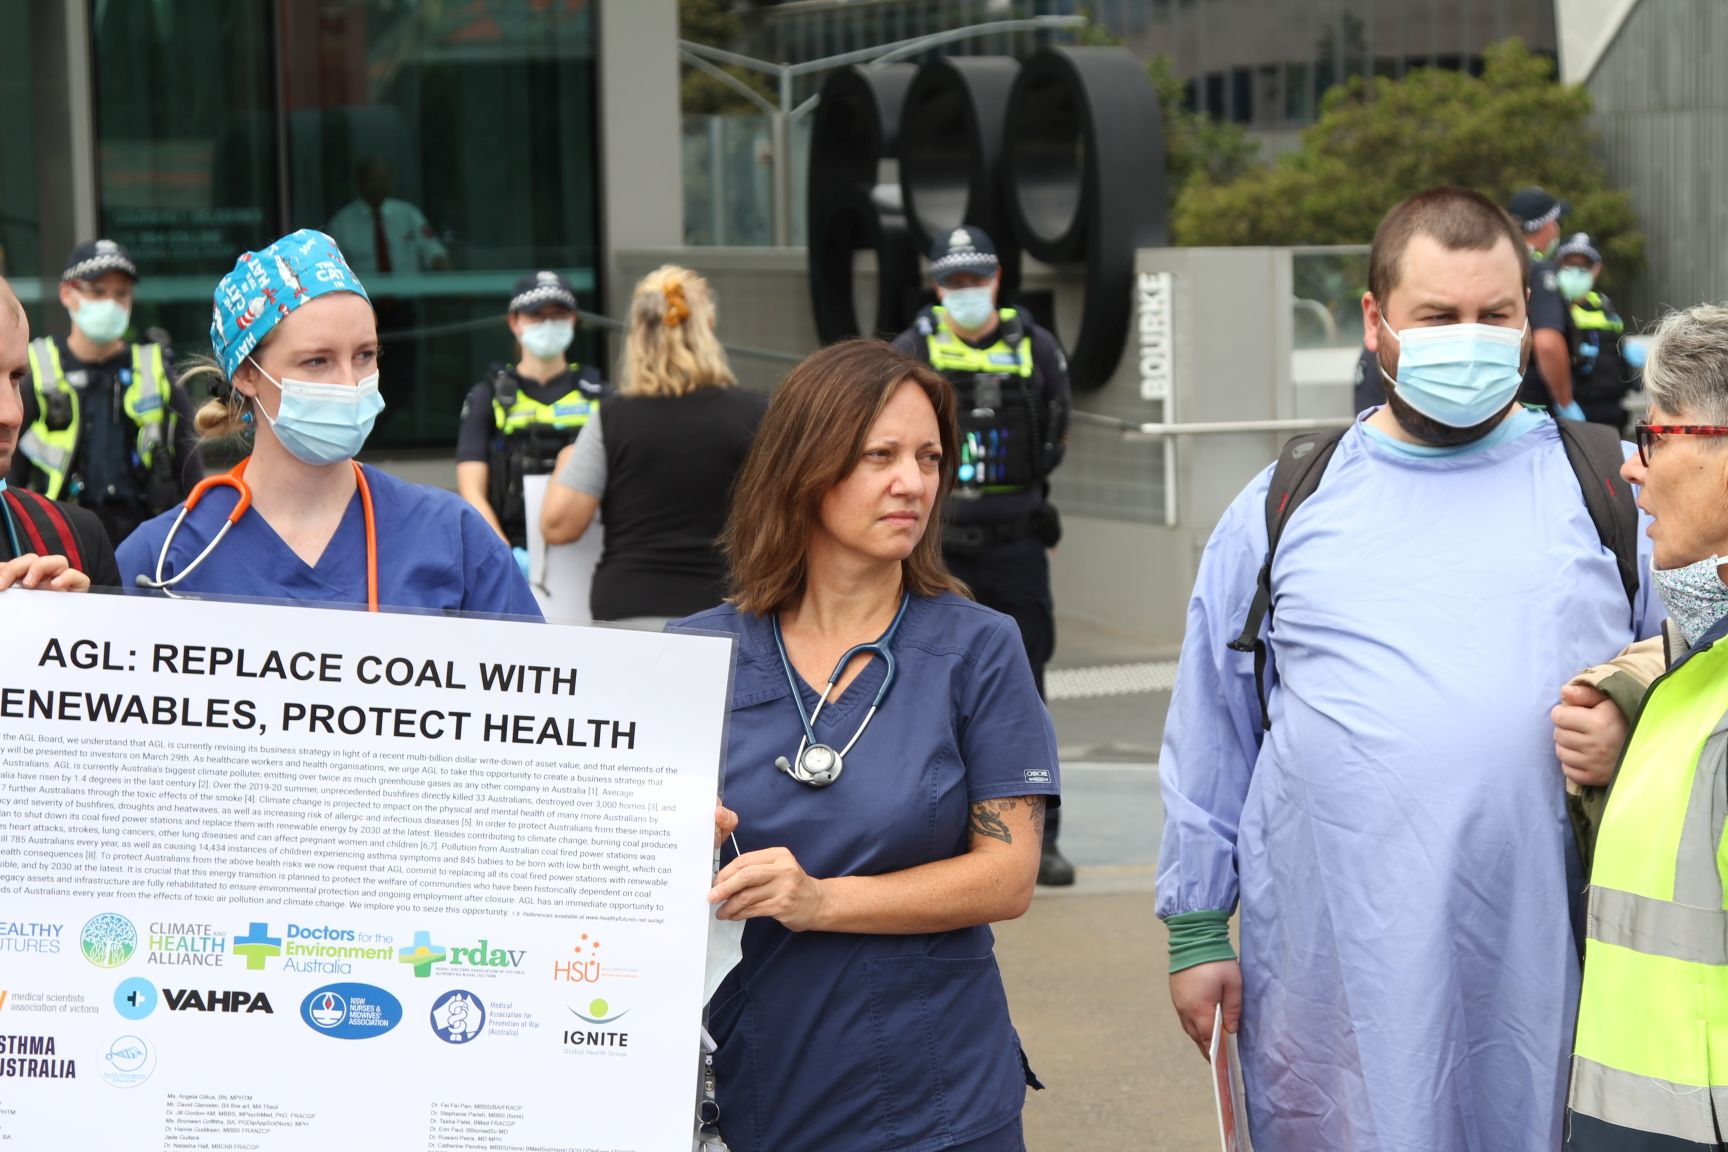 Join in to take action on AGL